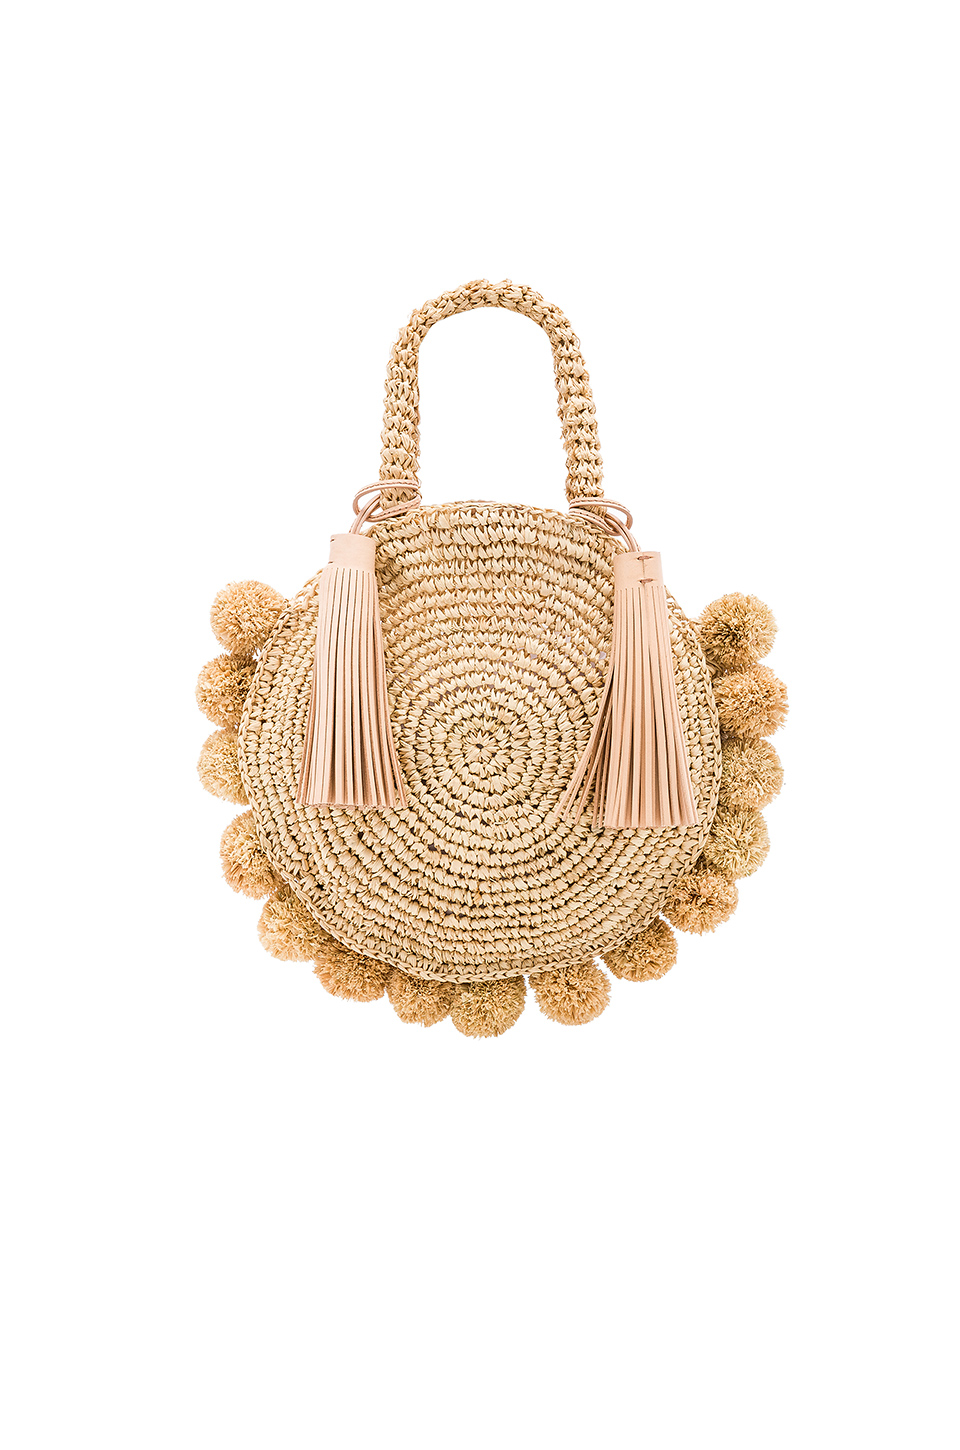 STRAW RAFFIA BAG    FOR INSTAGRAM ARM CANDY, THIS WILL BE YOUR PERFECT VACATION BAG TO CARRY YOUR ESSENTIALS WHILE LOOKING SUPER ON TREND, tHE RAFFIA BAG TREND HAS BEEN POPULAR SINCE LAST SPRING AND IT'S TAKING OVER IN ALL SHAPES AND SIZES THIS YEAR!